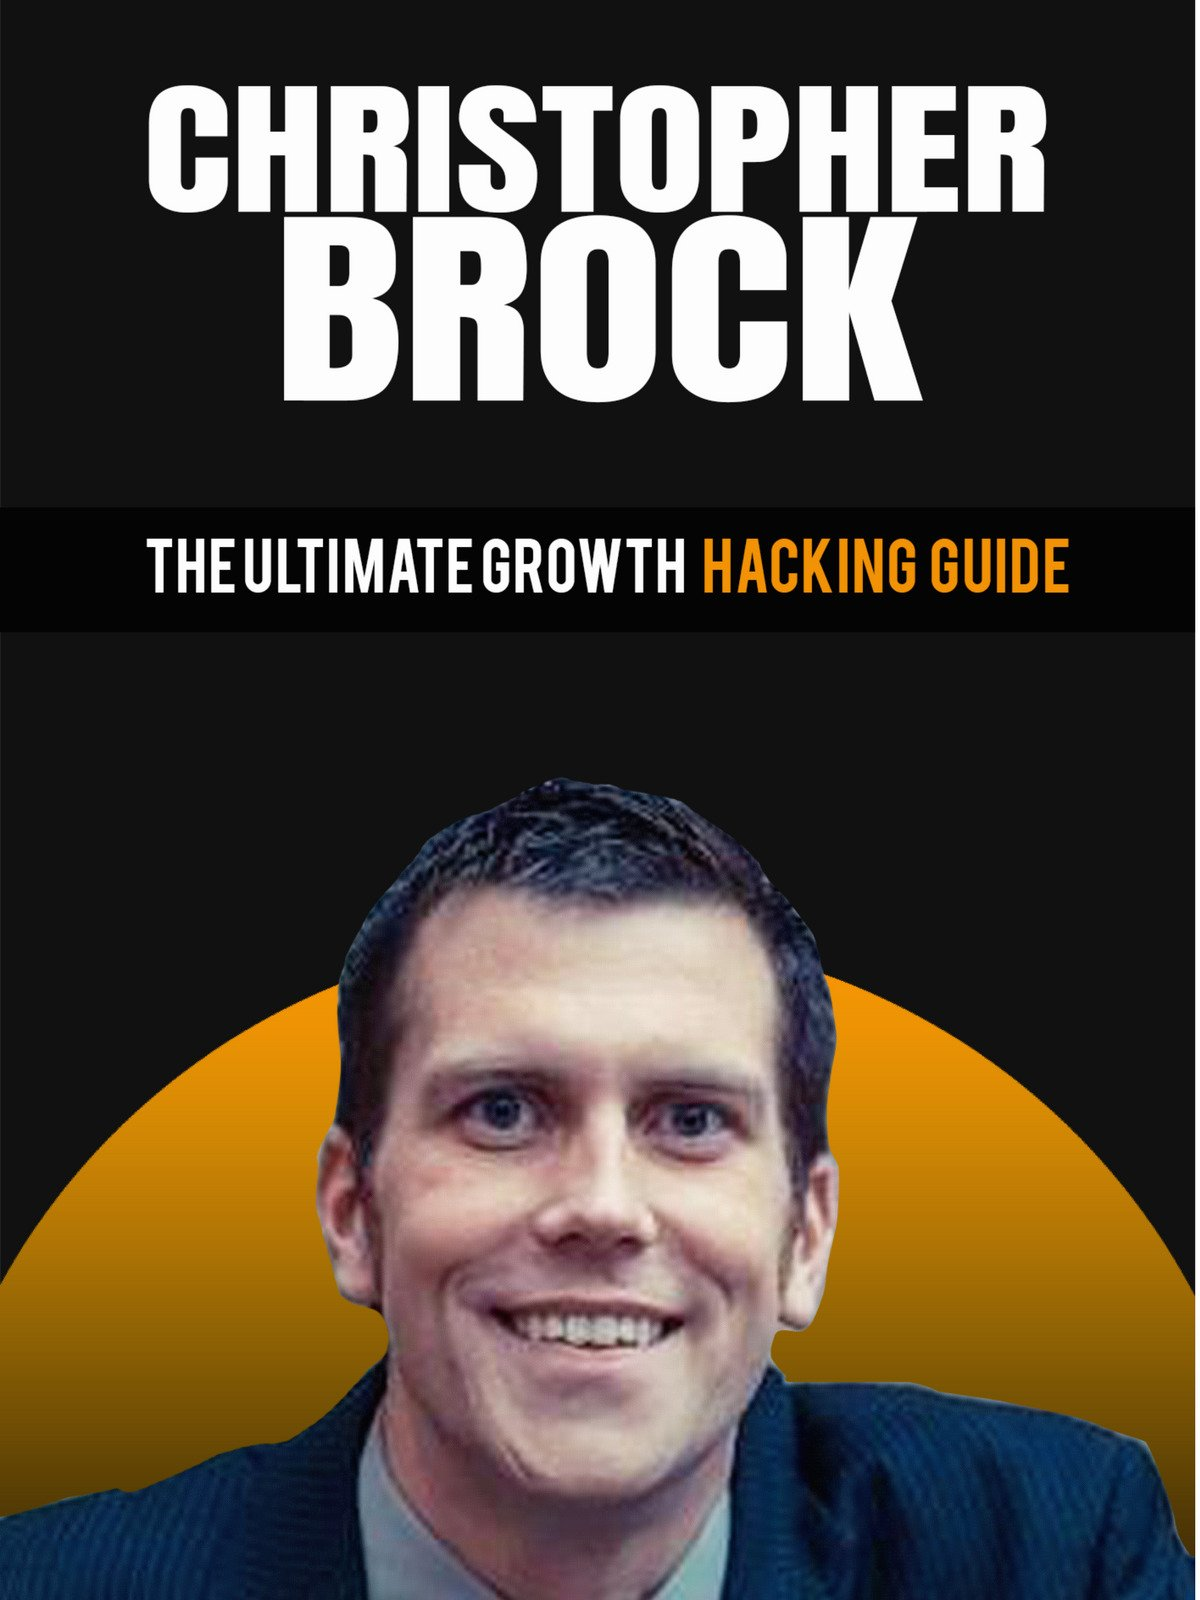 Christopher Brock: The Ultimate Growth Hacking Guide